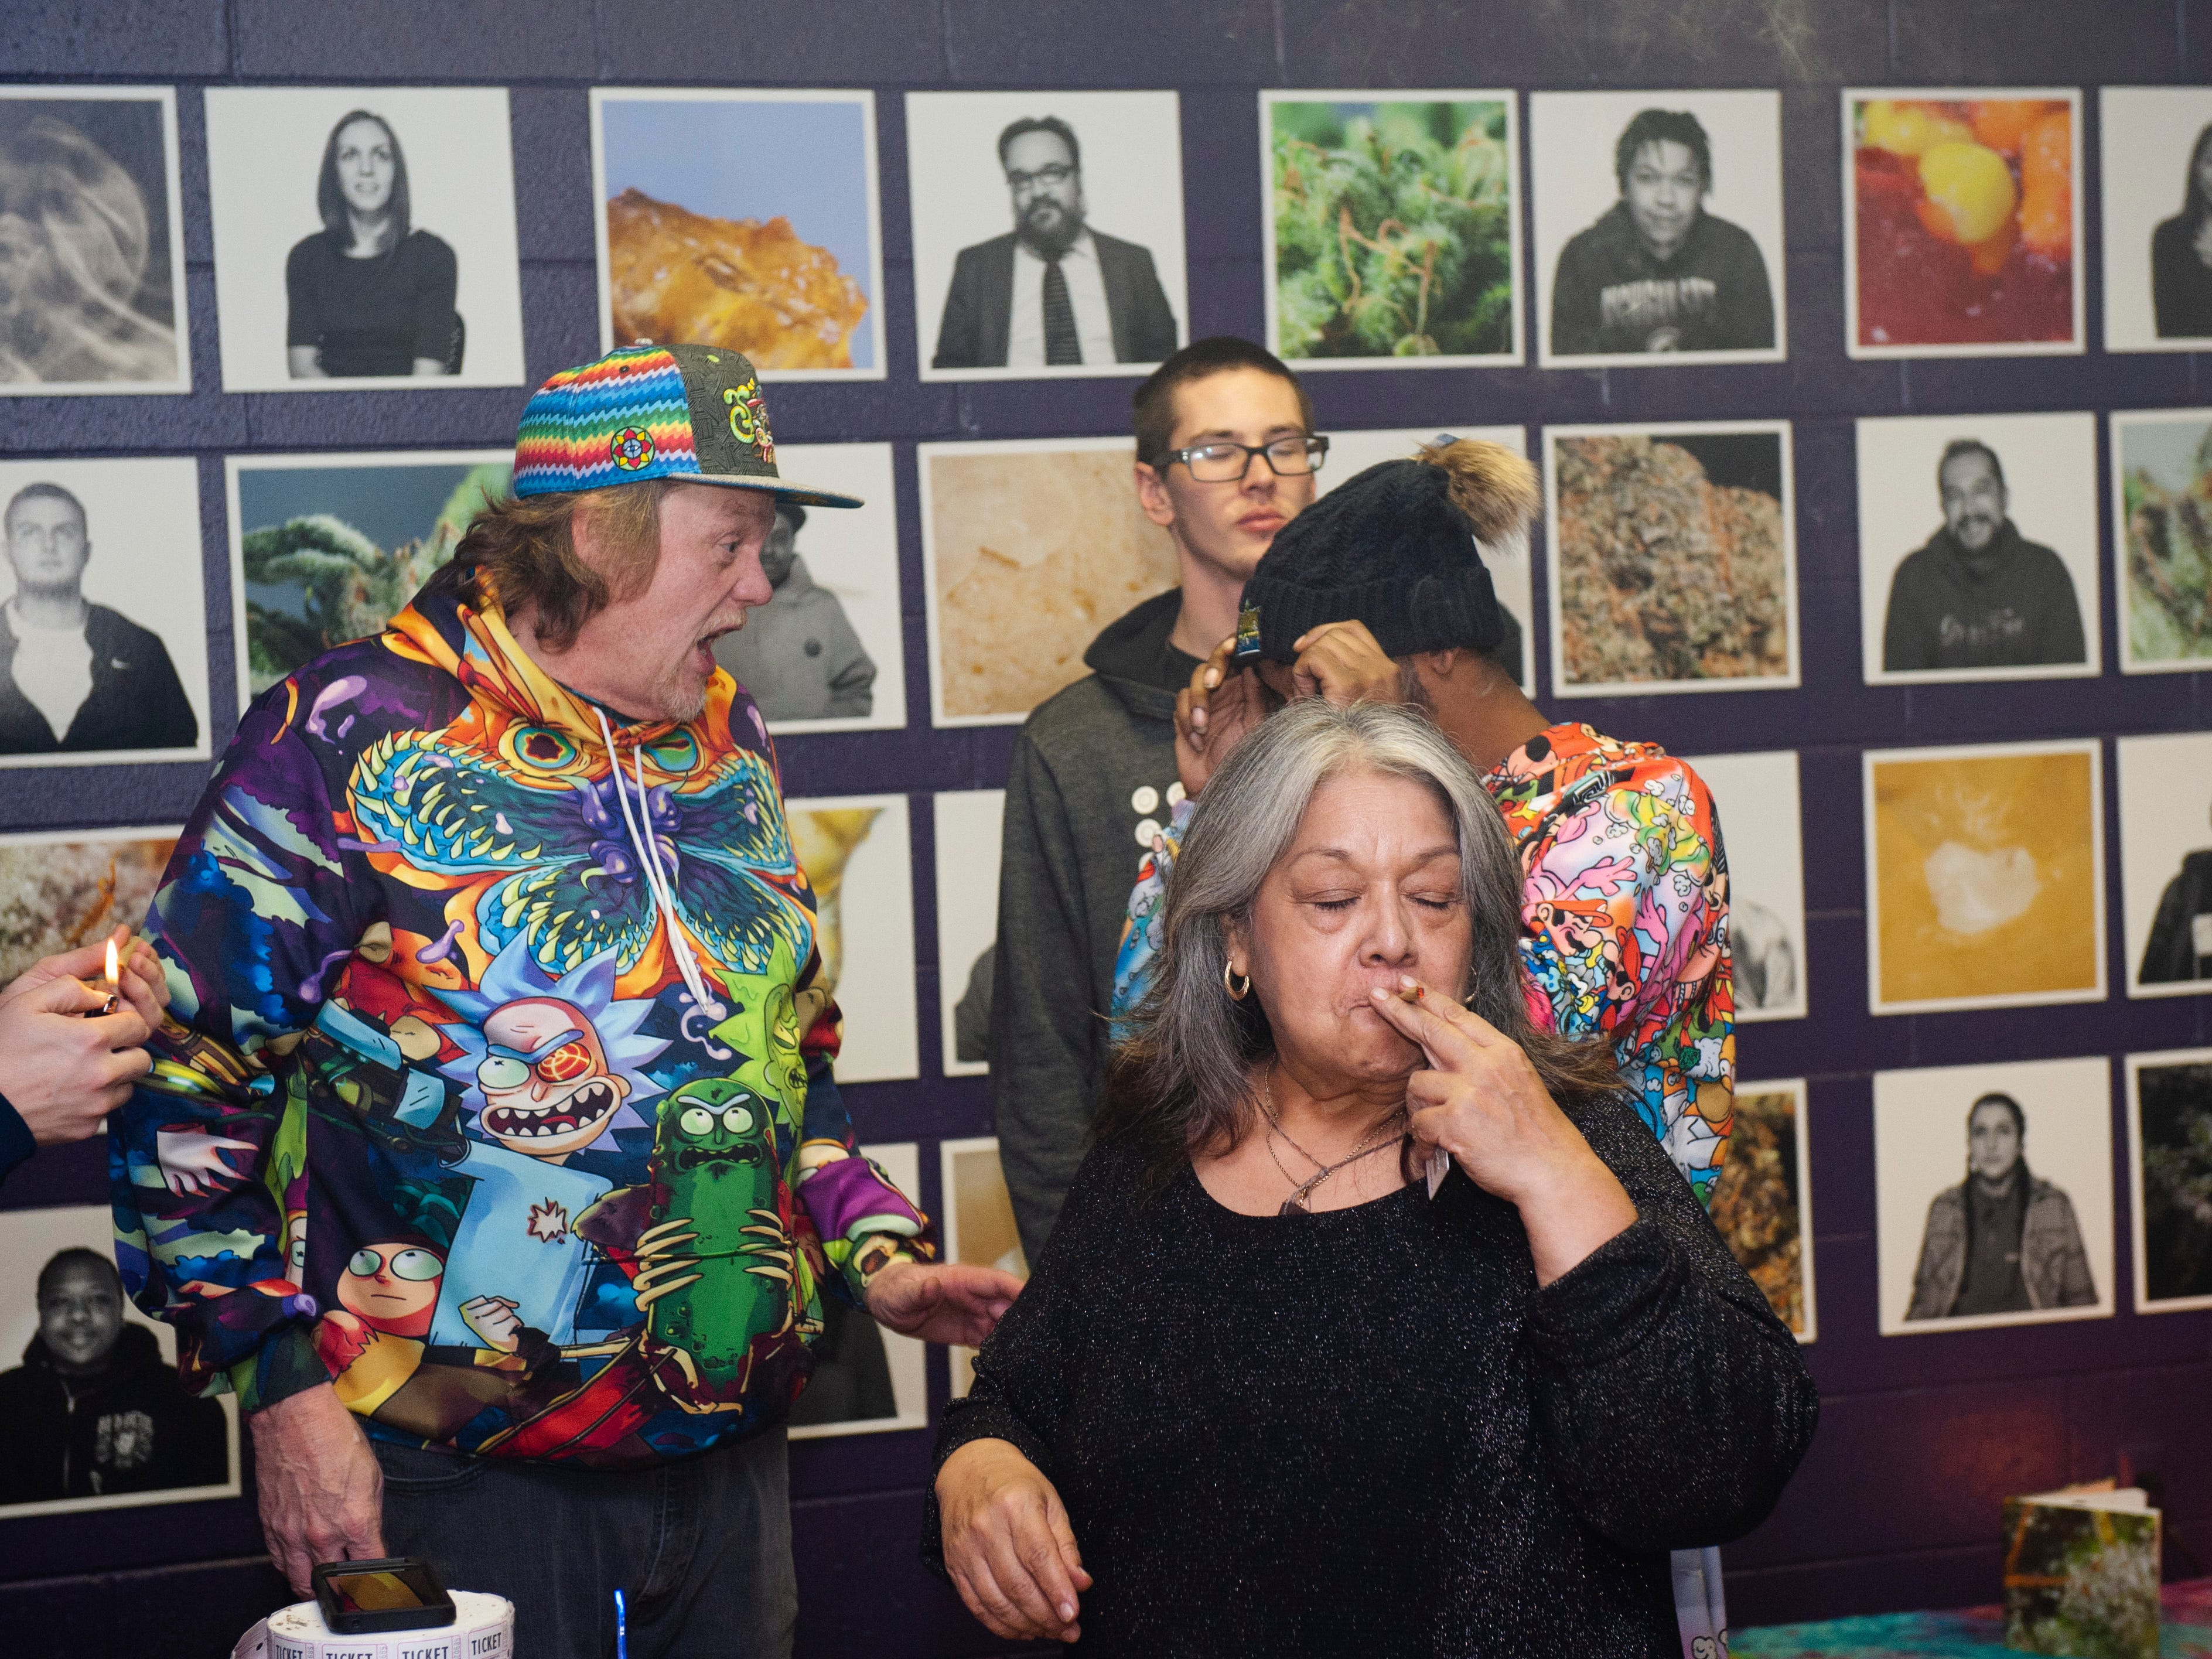 """Joanne Diaz, 65, of Flint takes a hit during """"The Art of Cannabis"""" event at the Cannabis Counsel in Detroit on Saturday, Dec. 22, 2018. Diaz said she's smoked marijuana since she was 15 years old."""